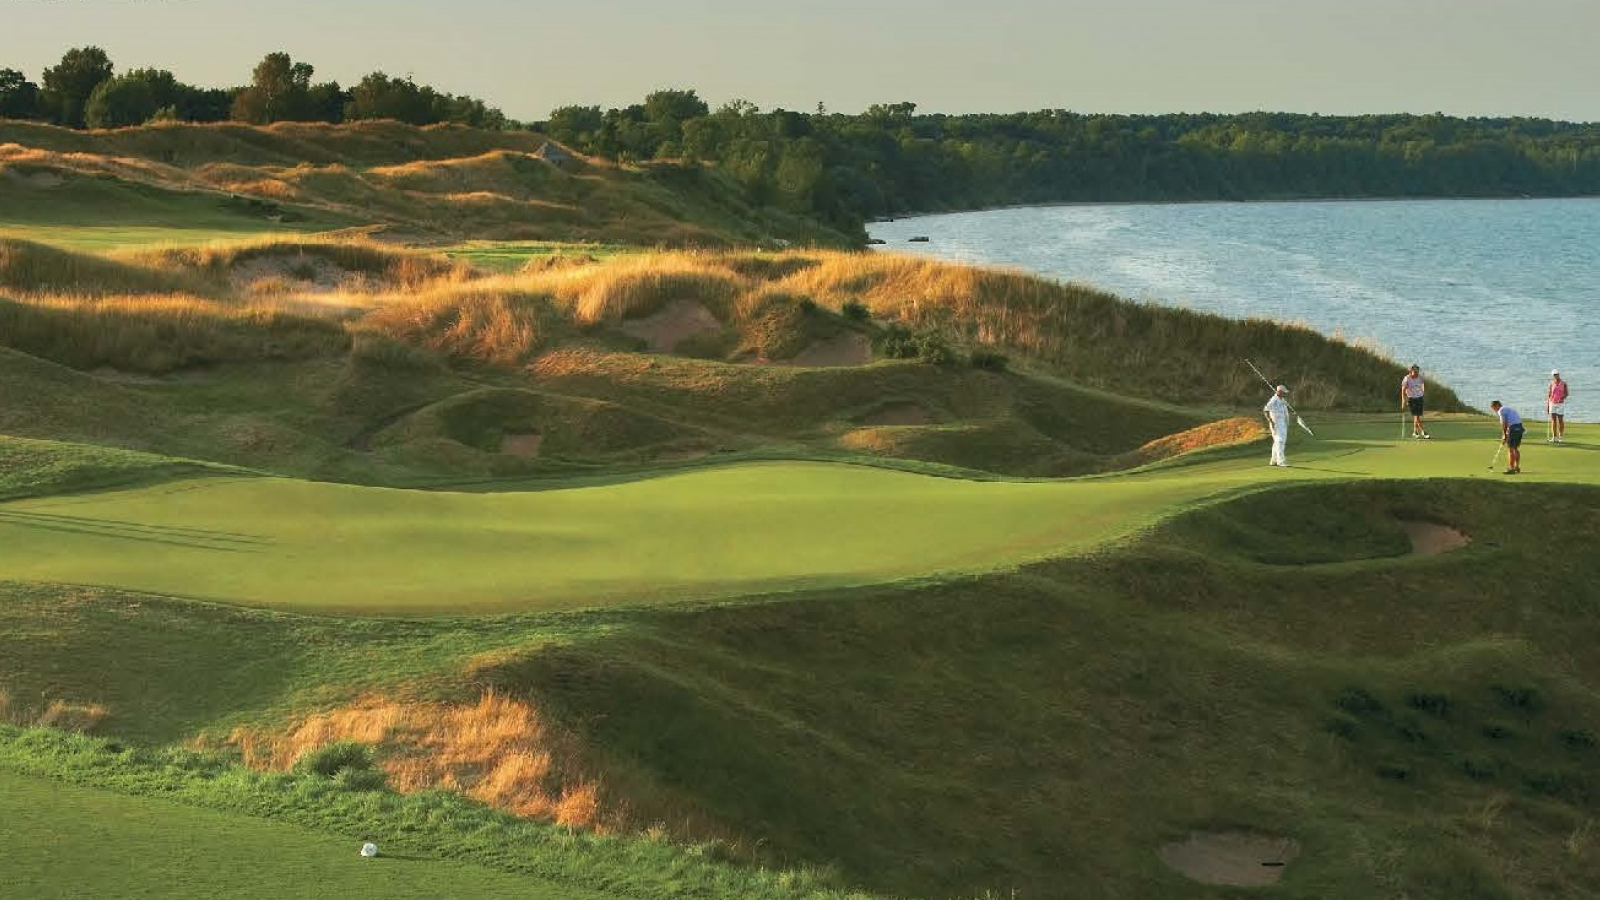 Economic Impact Analysis of a Proposed New Golf Course   SB Friedman